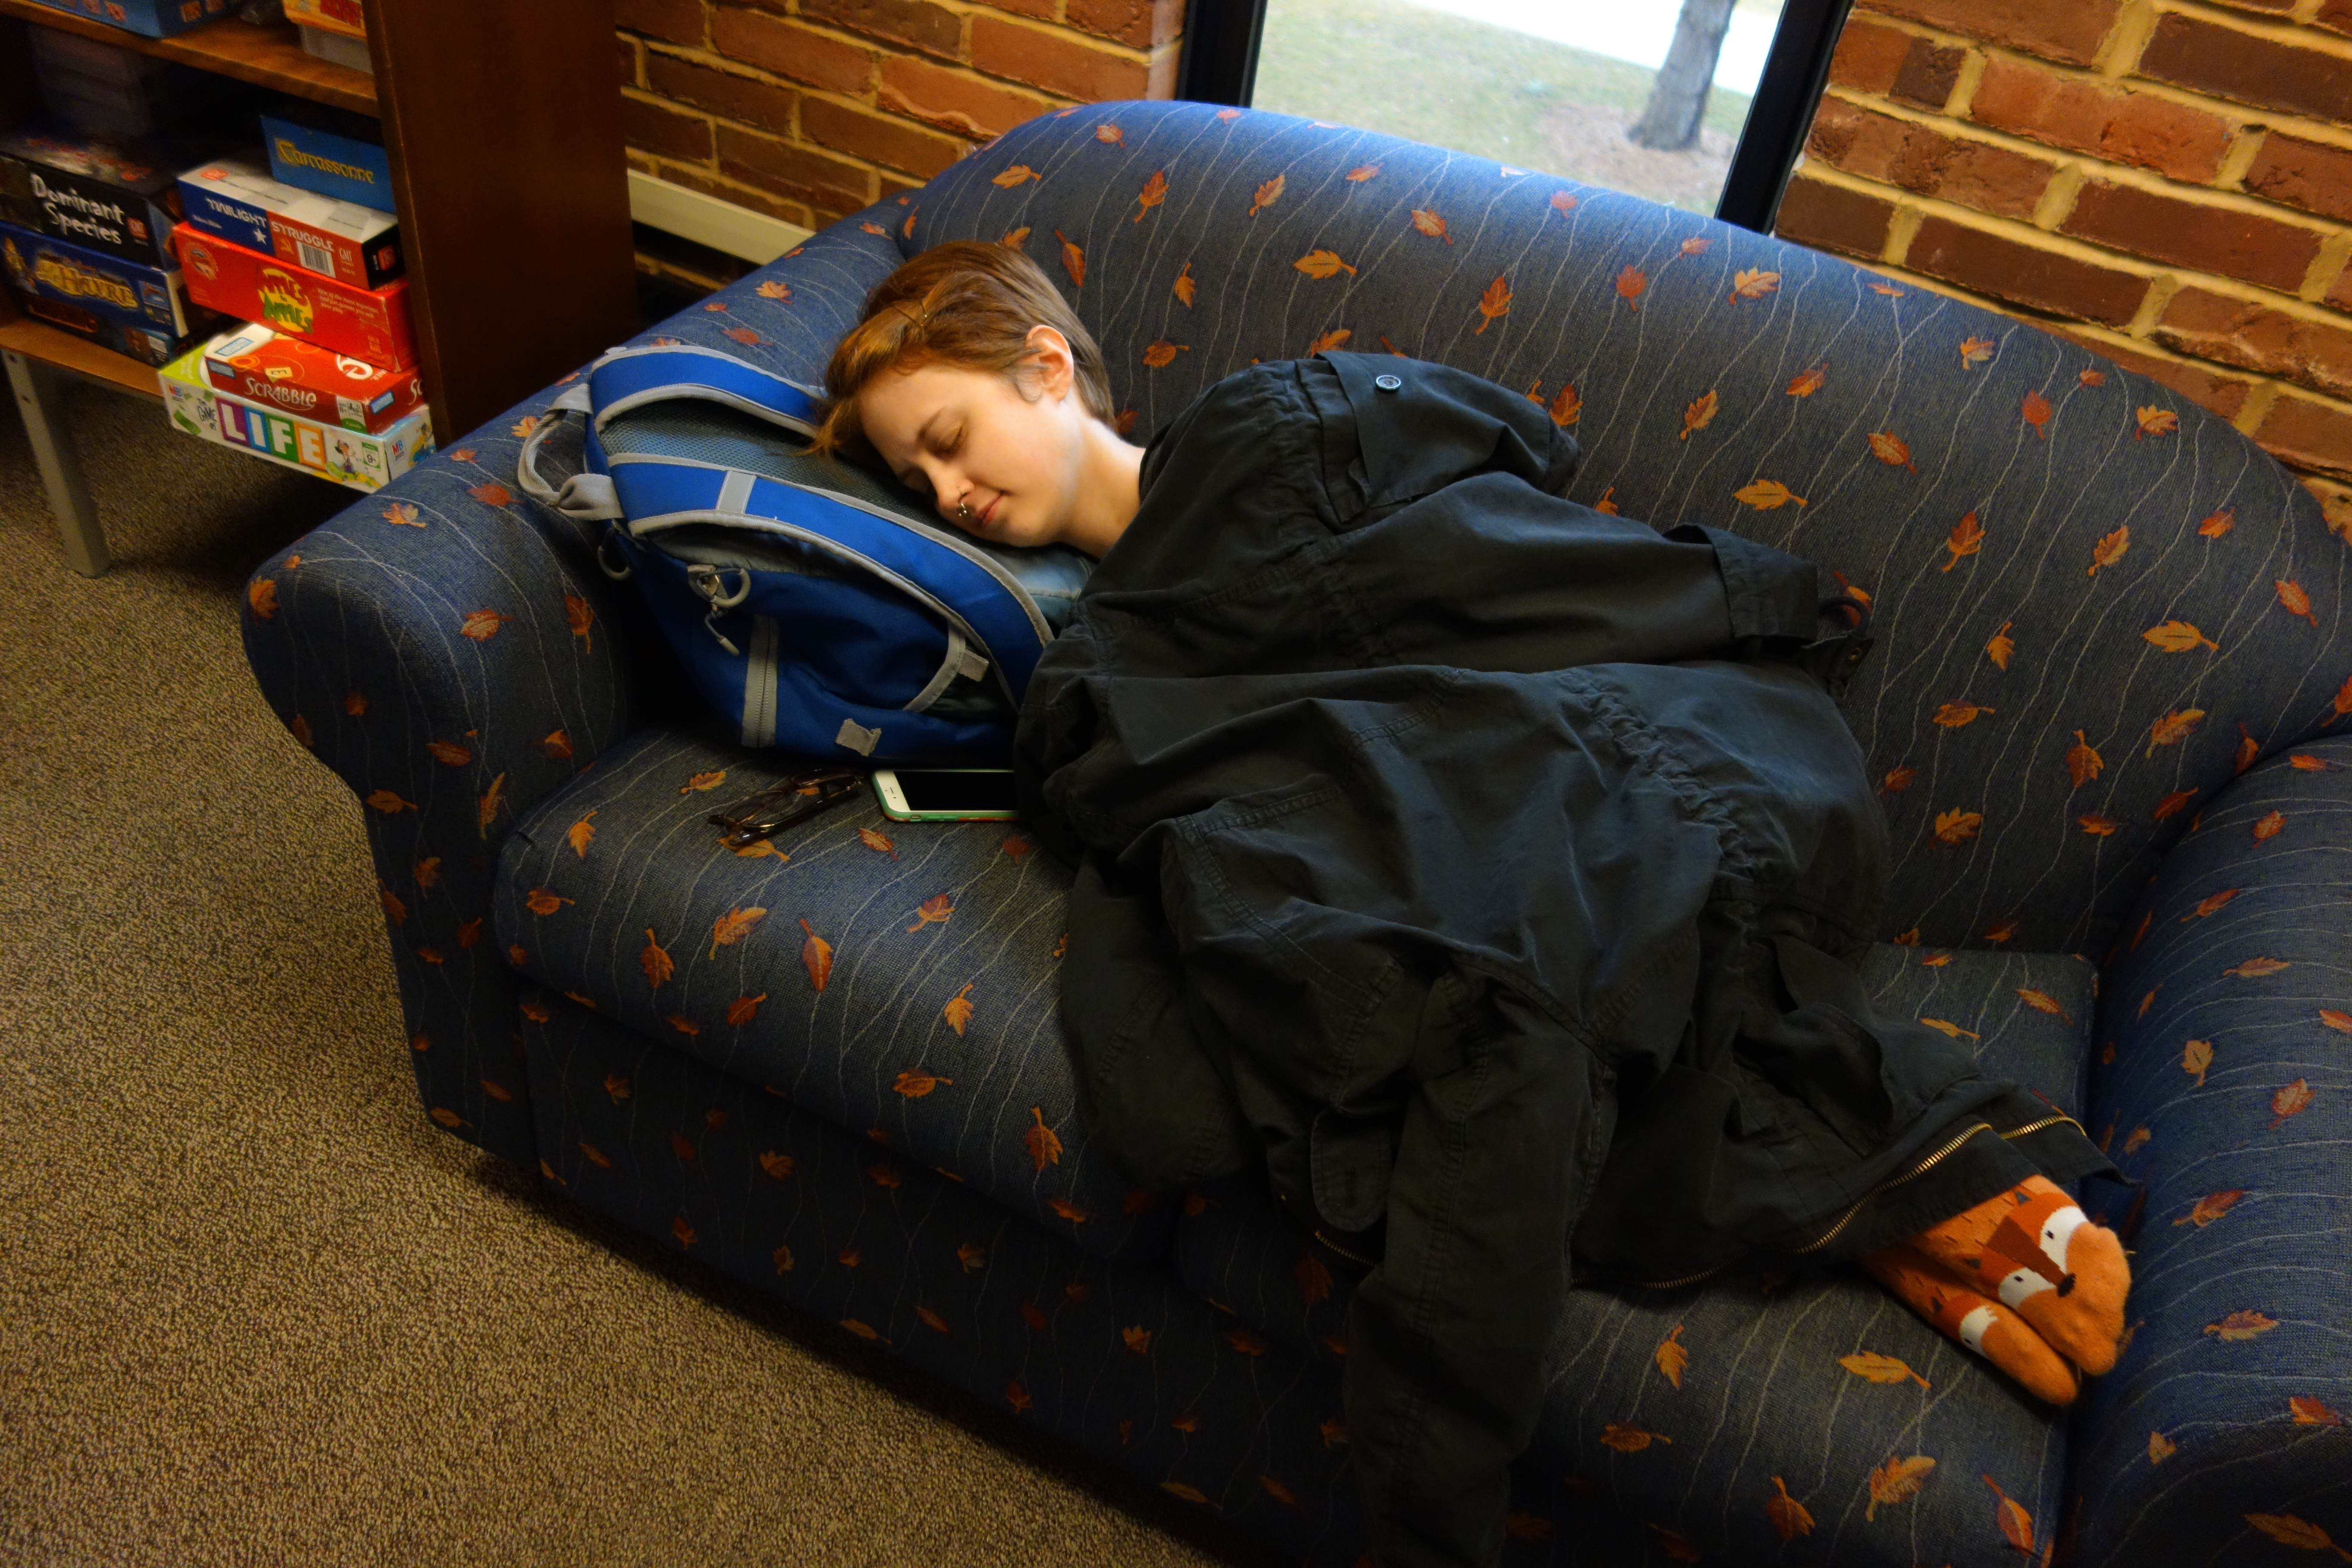 A student sleeps on a couch